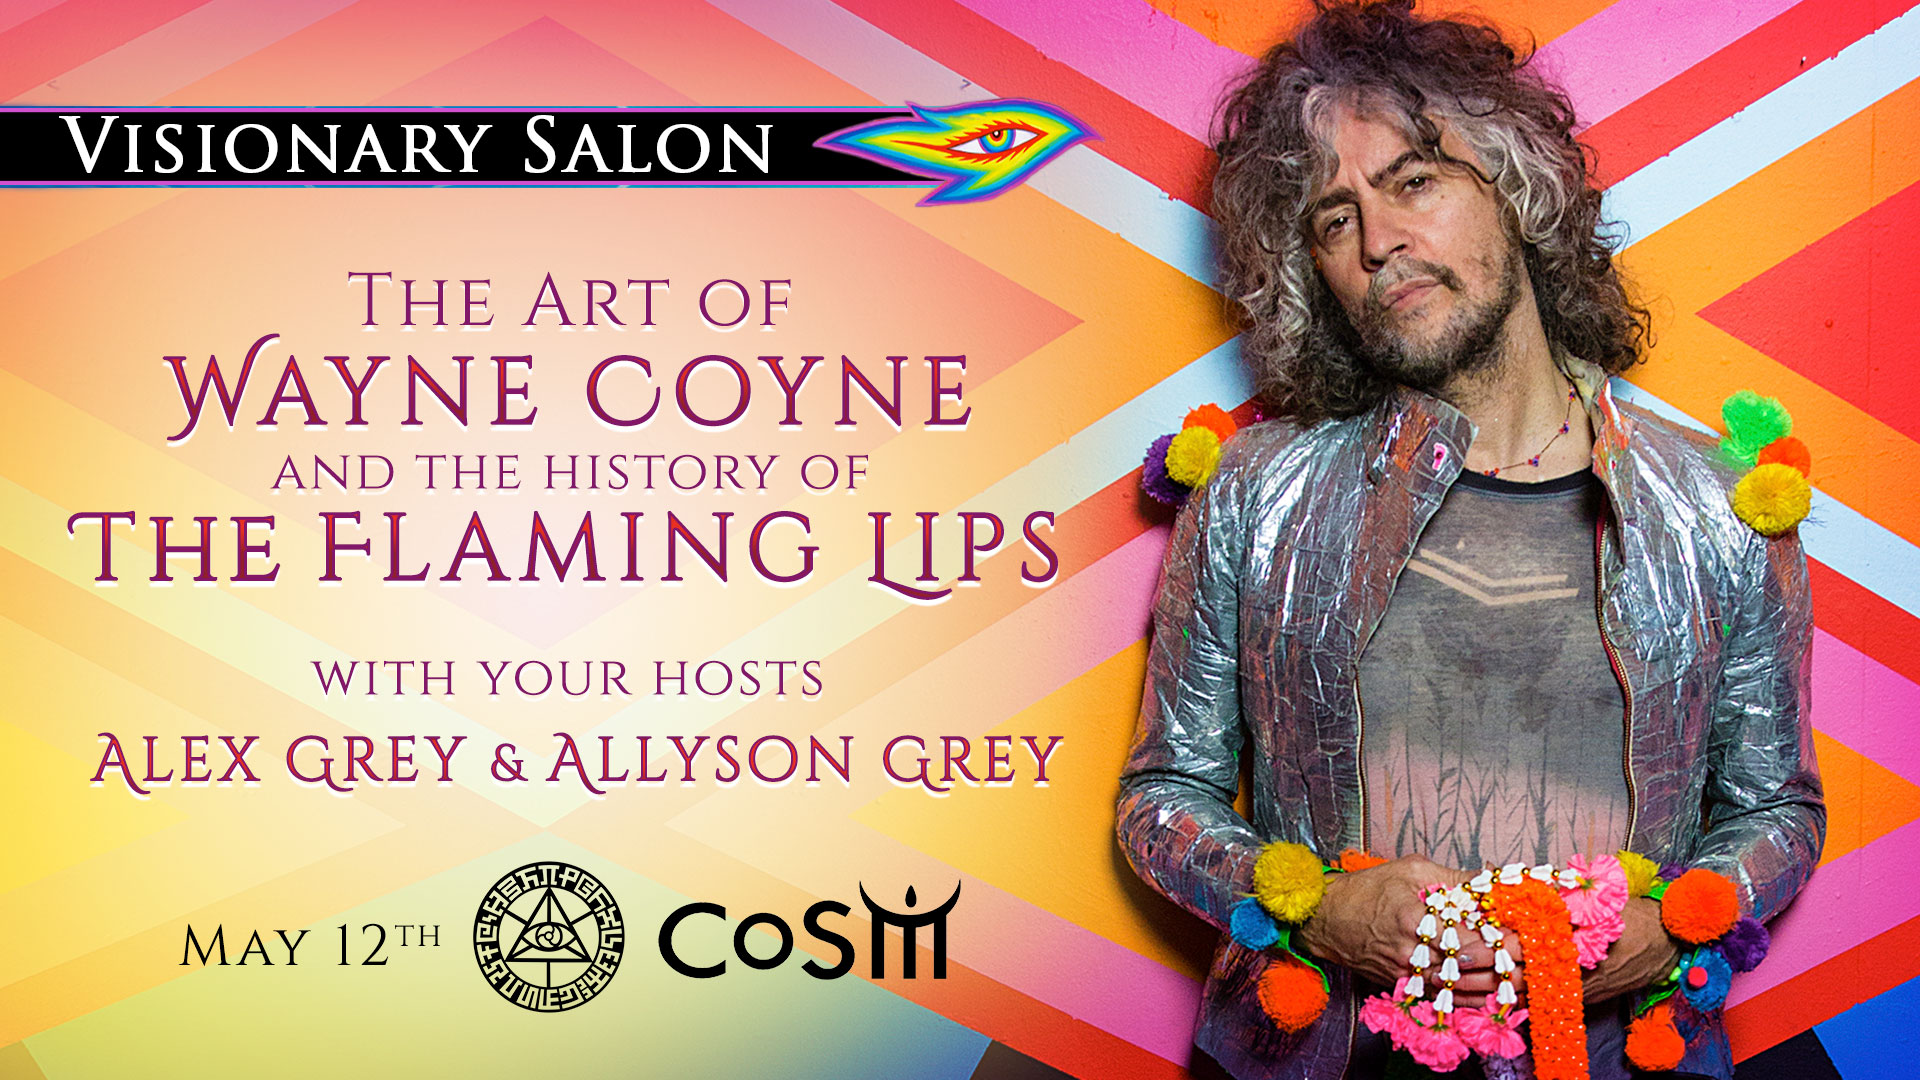 The Art Of Wayne Coyne The History Of The Flaming Lips Chapel Of